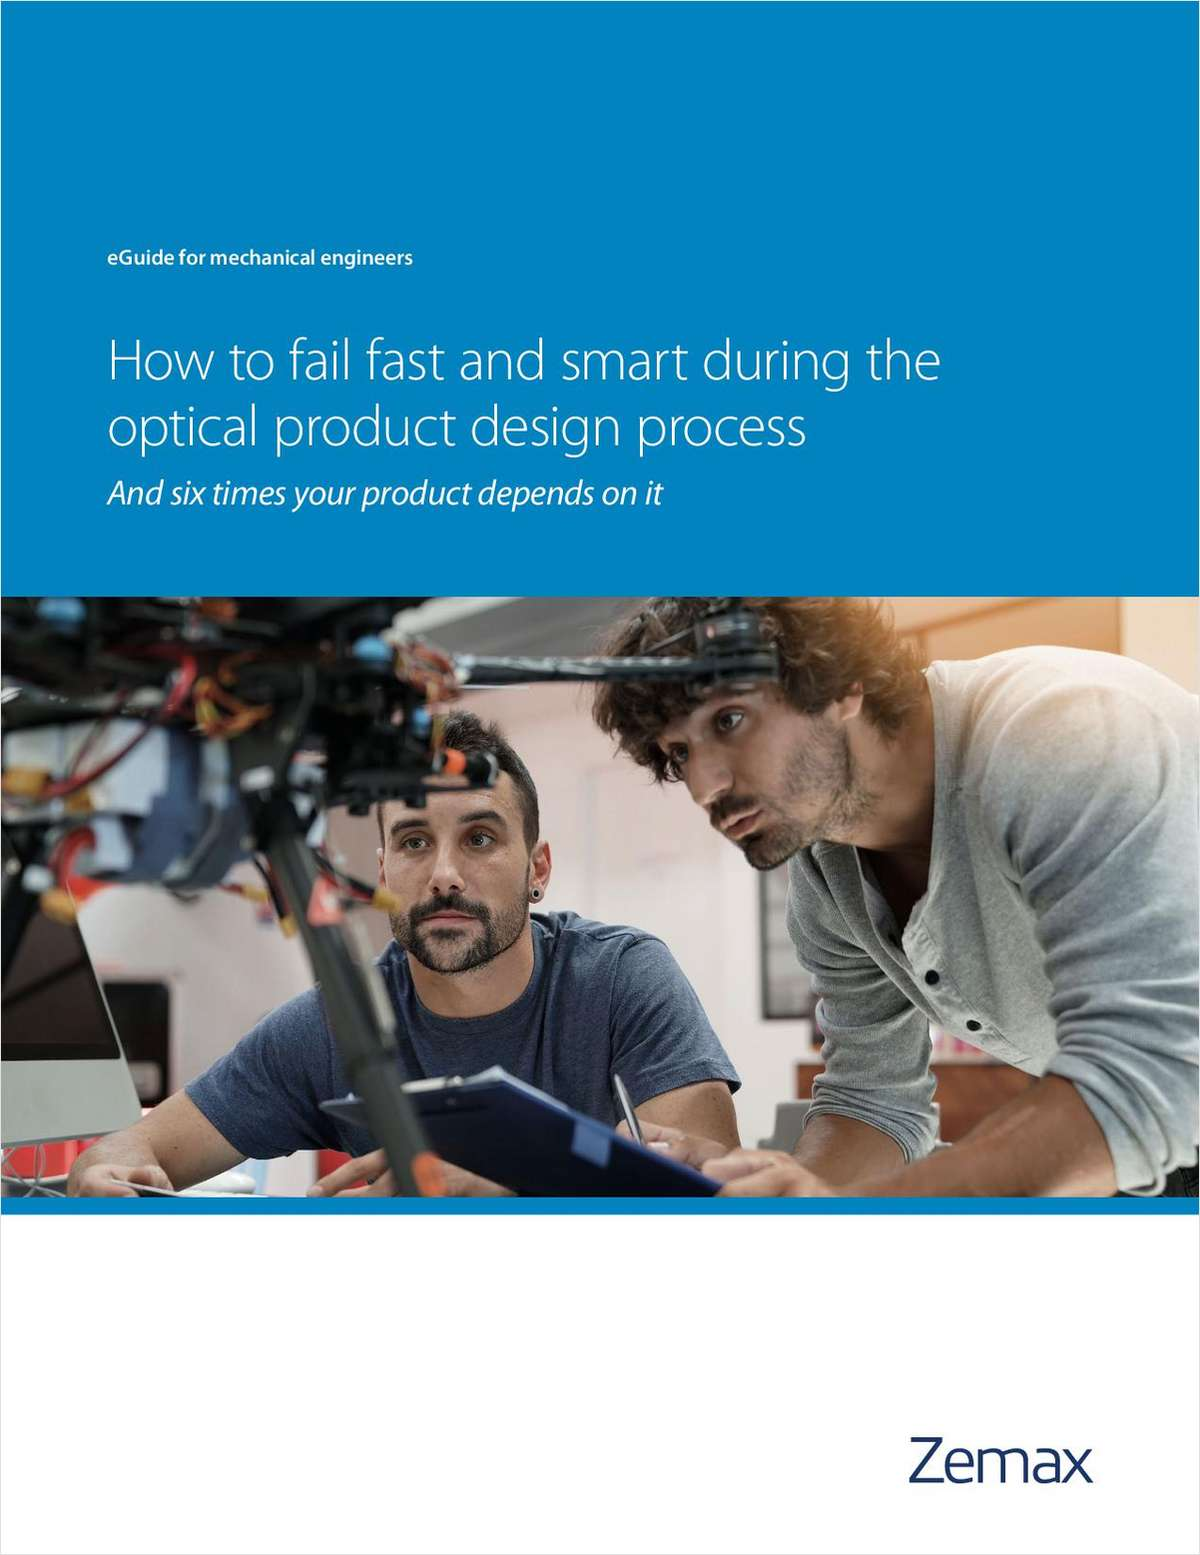 How to Fail Fast and Smart During the Optical Product Design Process